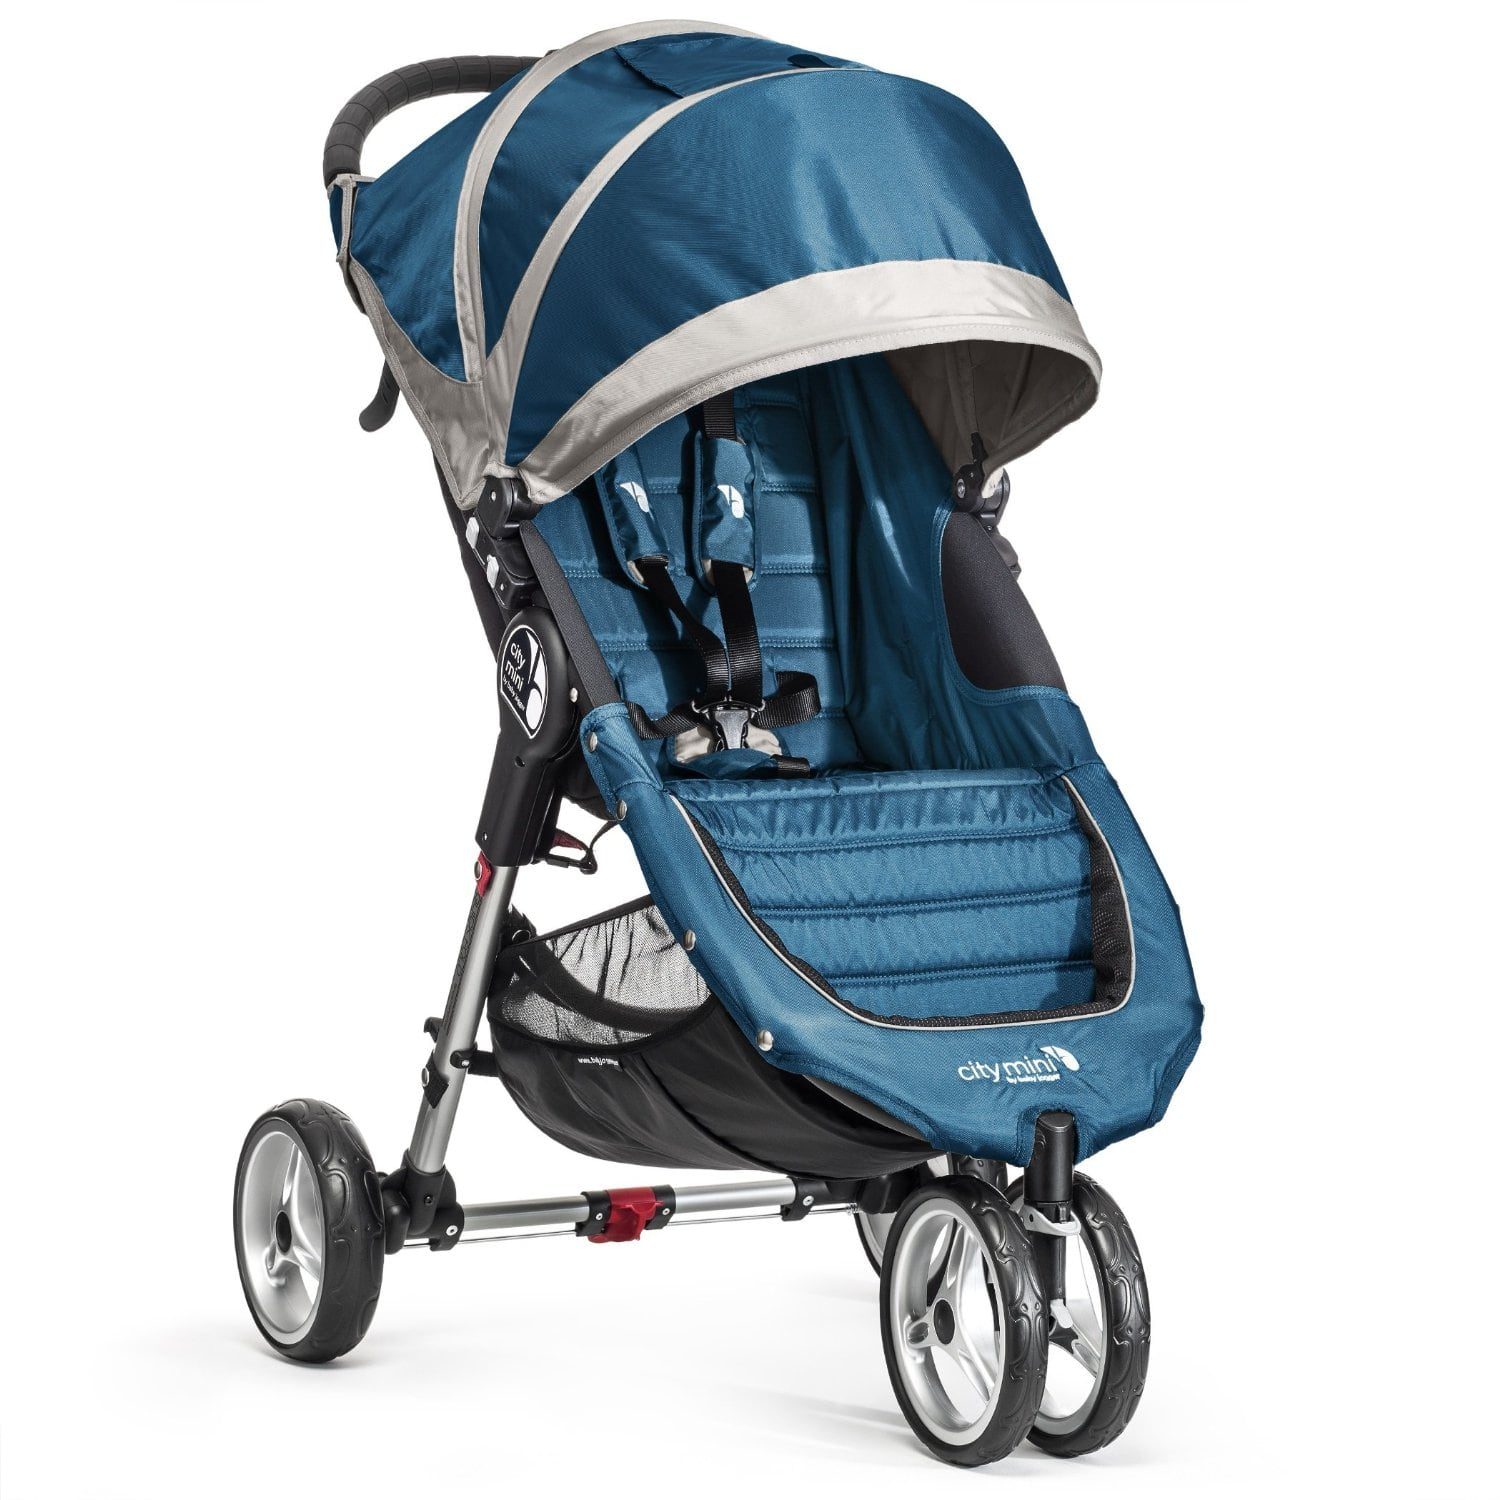 Baby Jogger City Mini Stroller (Teal/Grey), $165.30 at Amazon